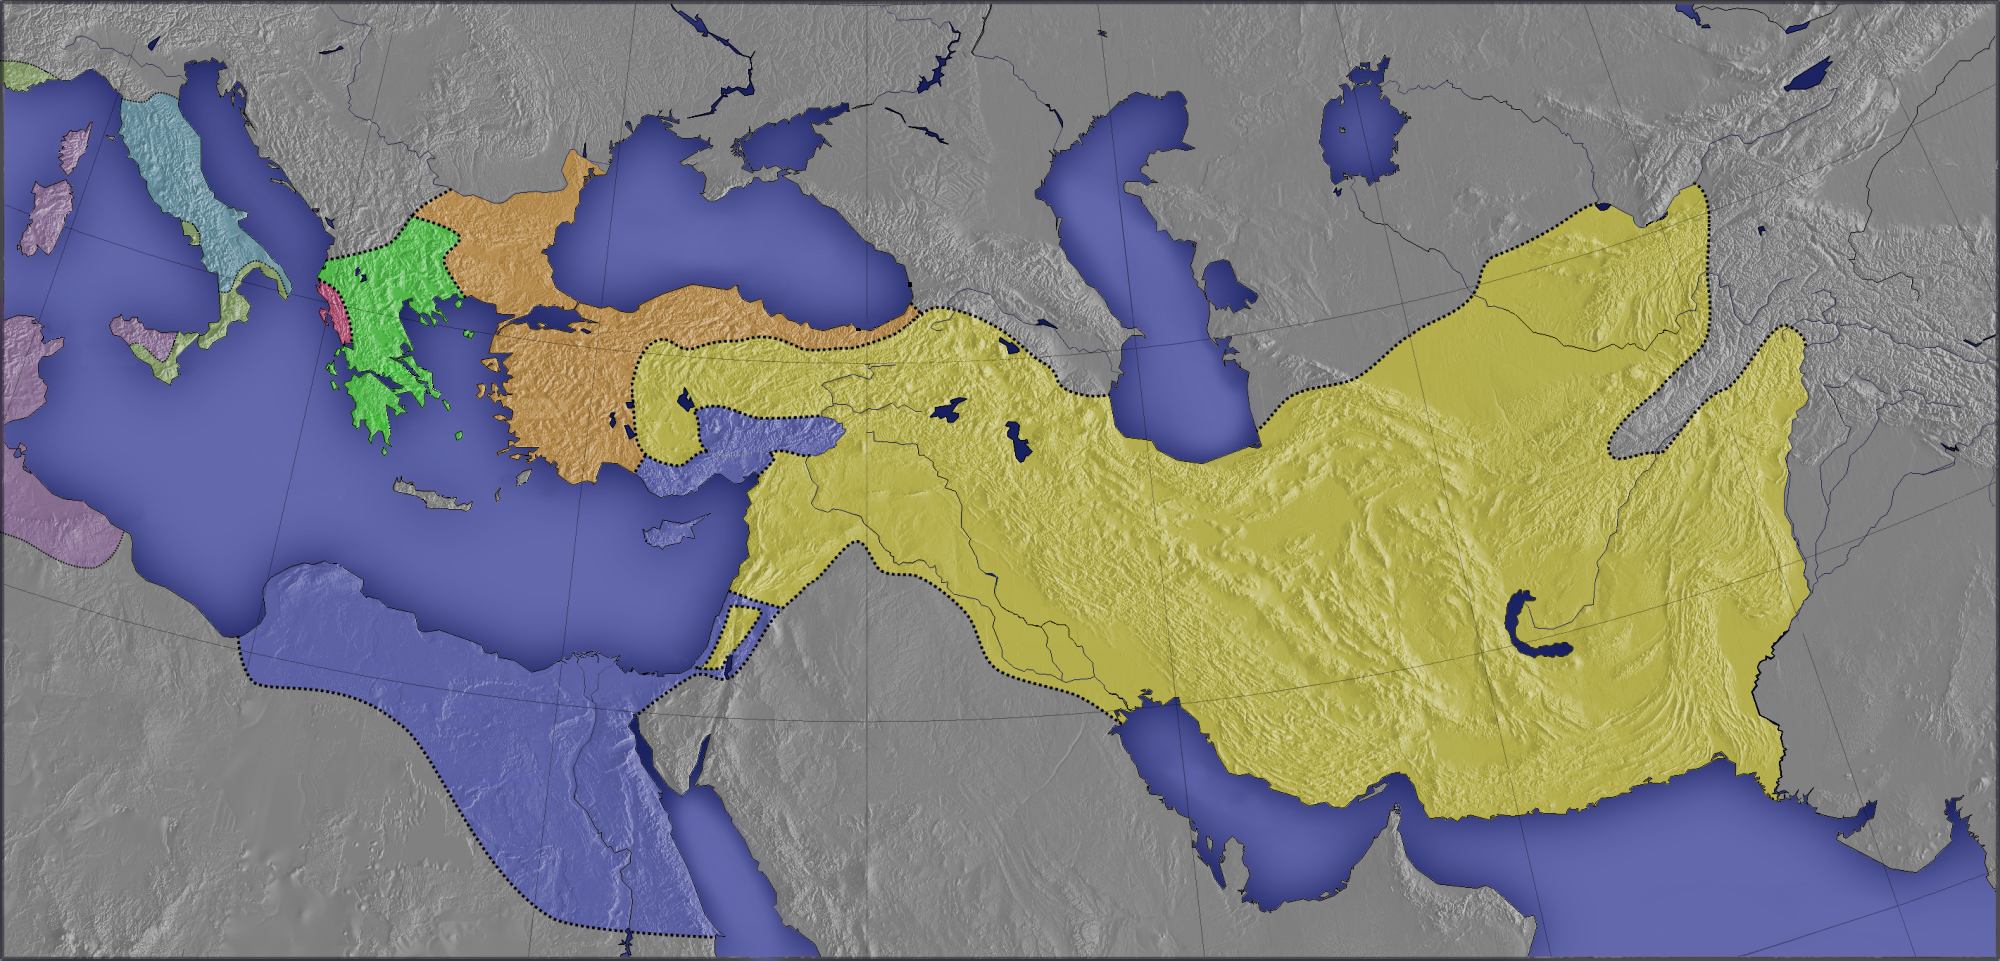 Filehellenistic world 300bc blank1g wikimedia commons filehellenistic world 300bc blank1g gumiabroncs Image collections